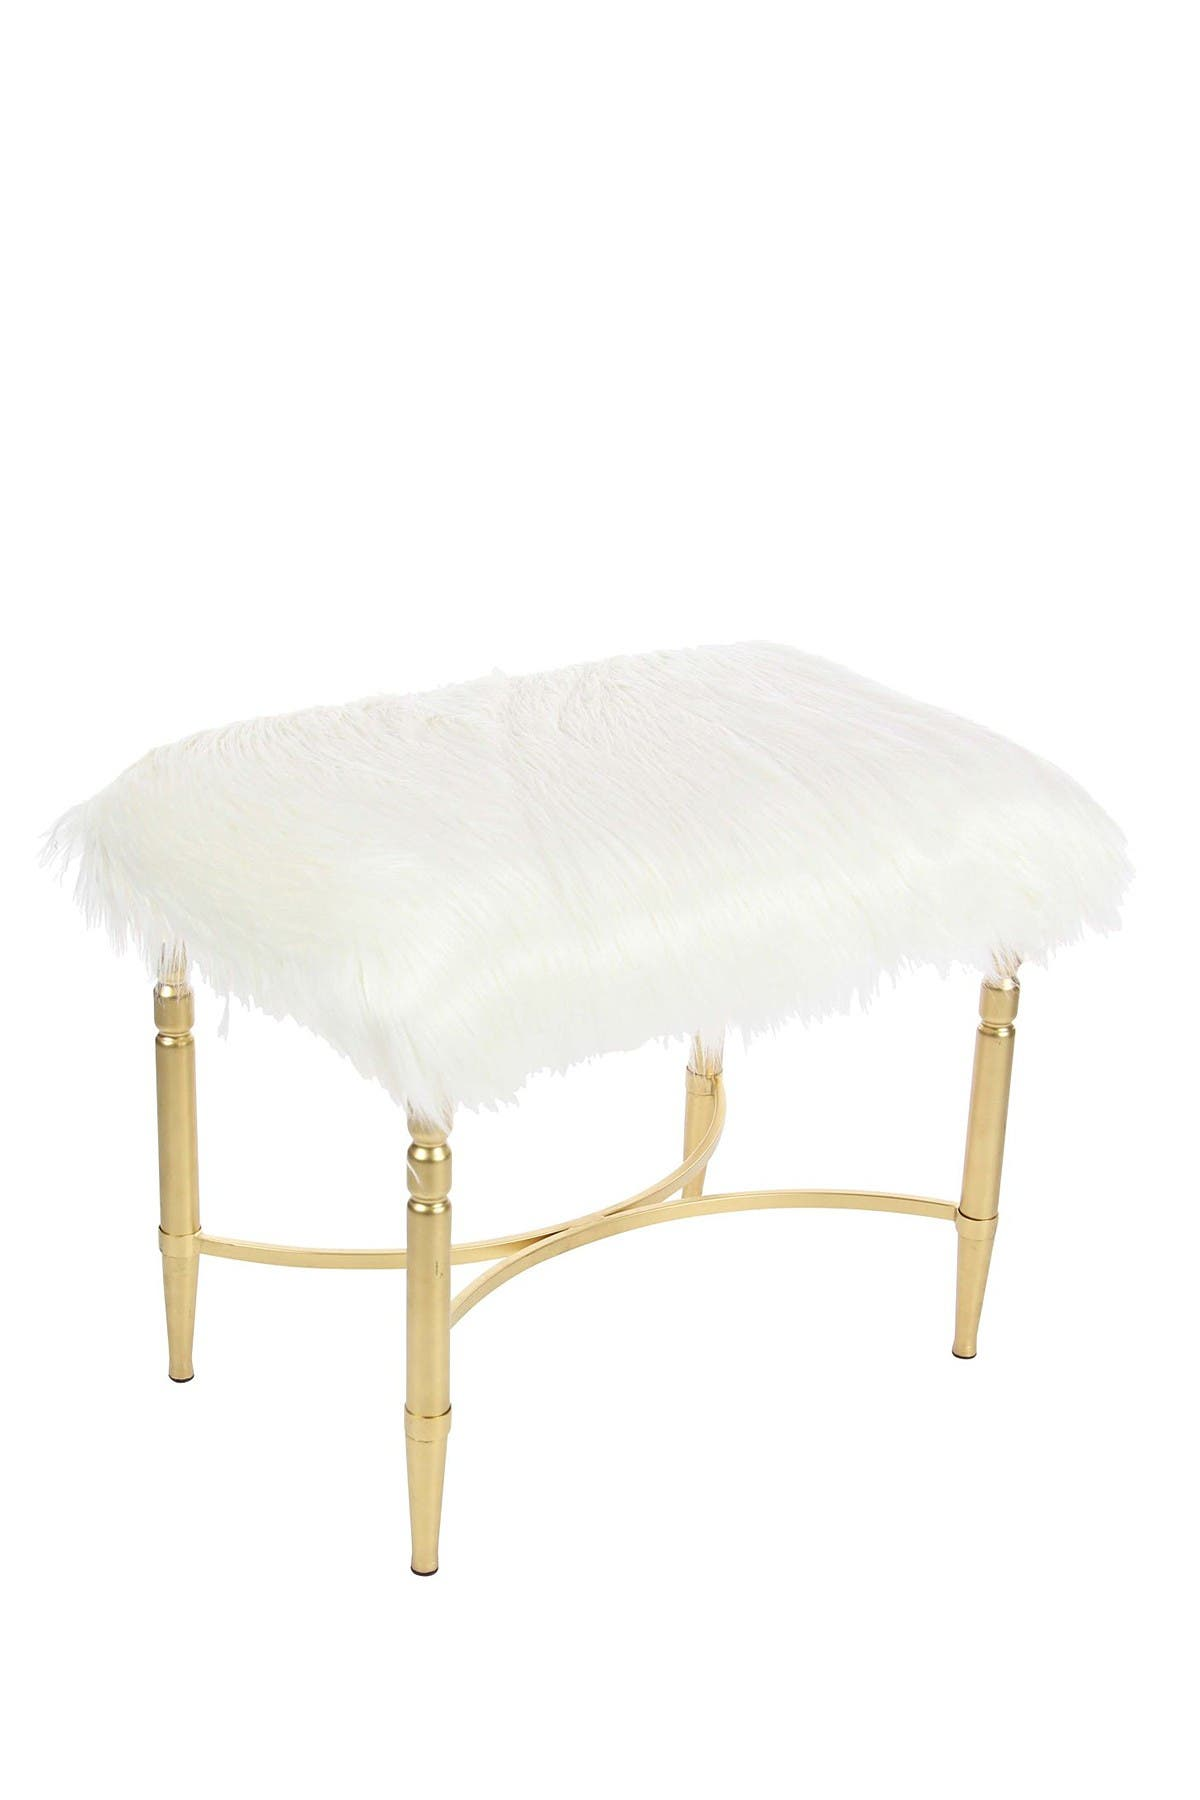 Image of Willow Row White/Gold Faux Fur Stool